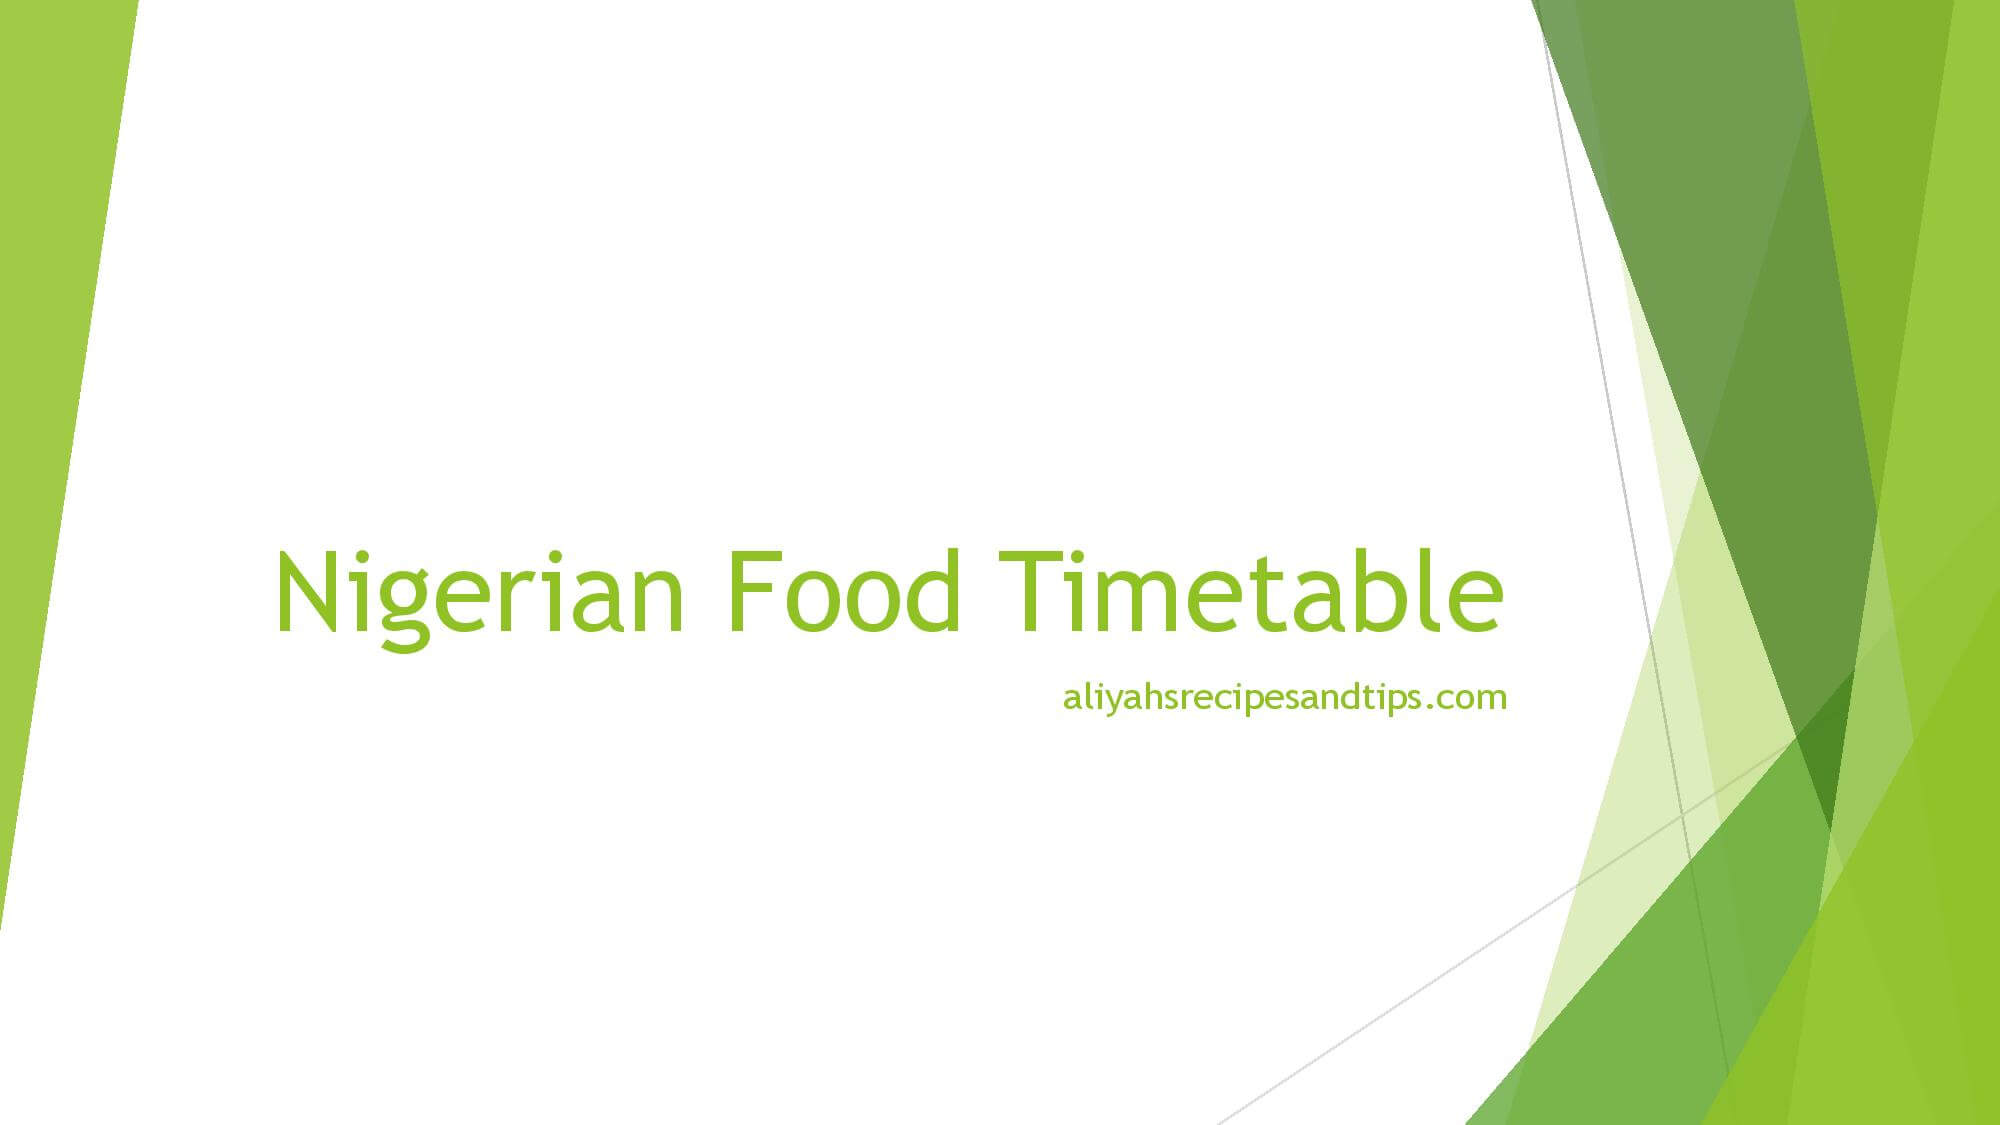 Nigerian Food Timetable